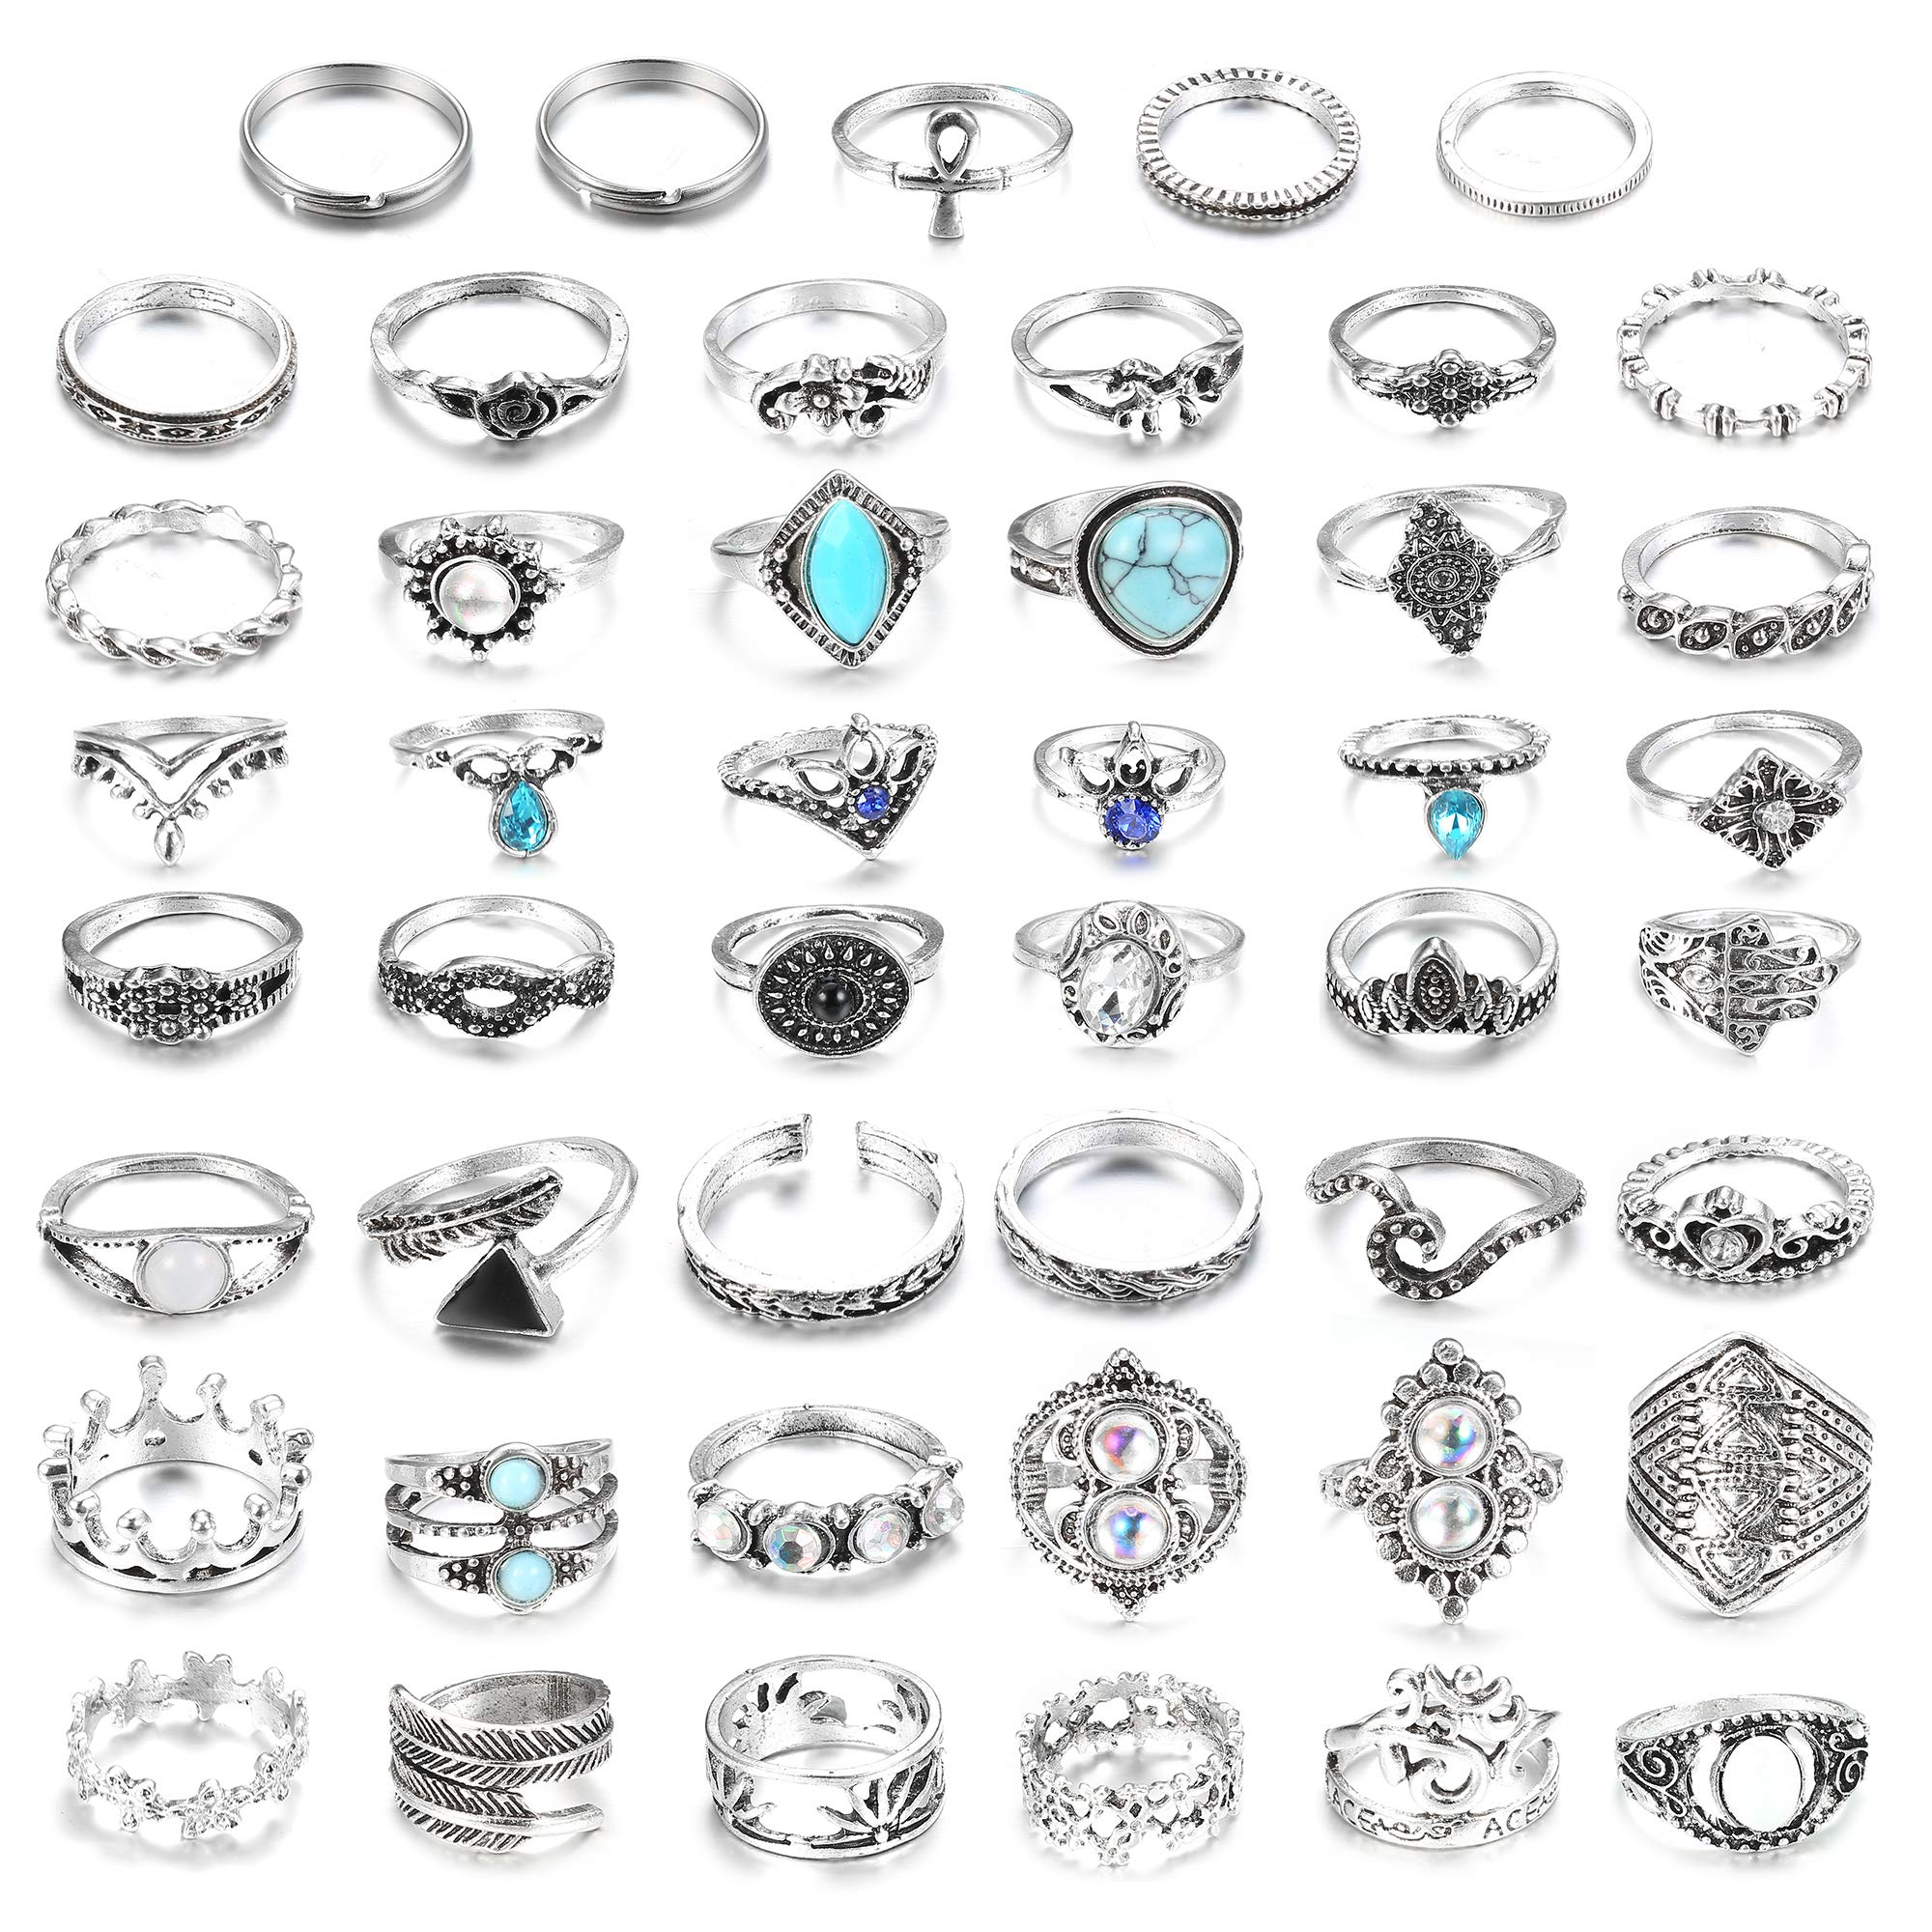 LOLIAS 46 Pcs Vintage Knuckle Ring Set for Women Girls Stackable Rings Set Hollow Carved Flowers (A1:46 Pcs a Set) by LOLIAS